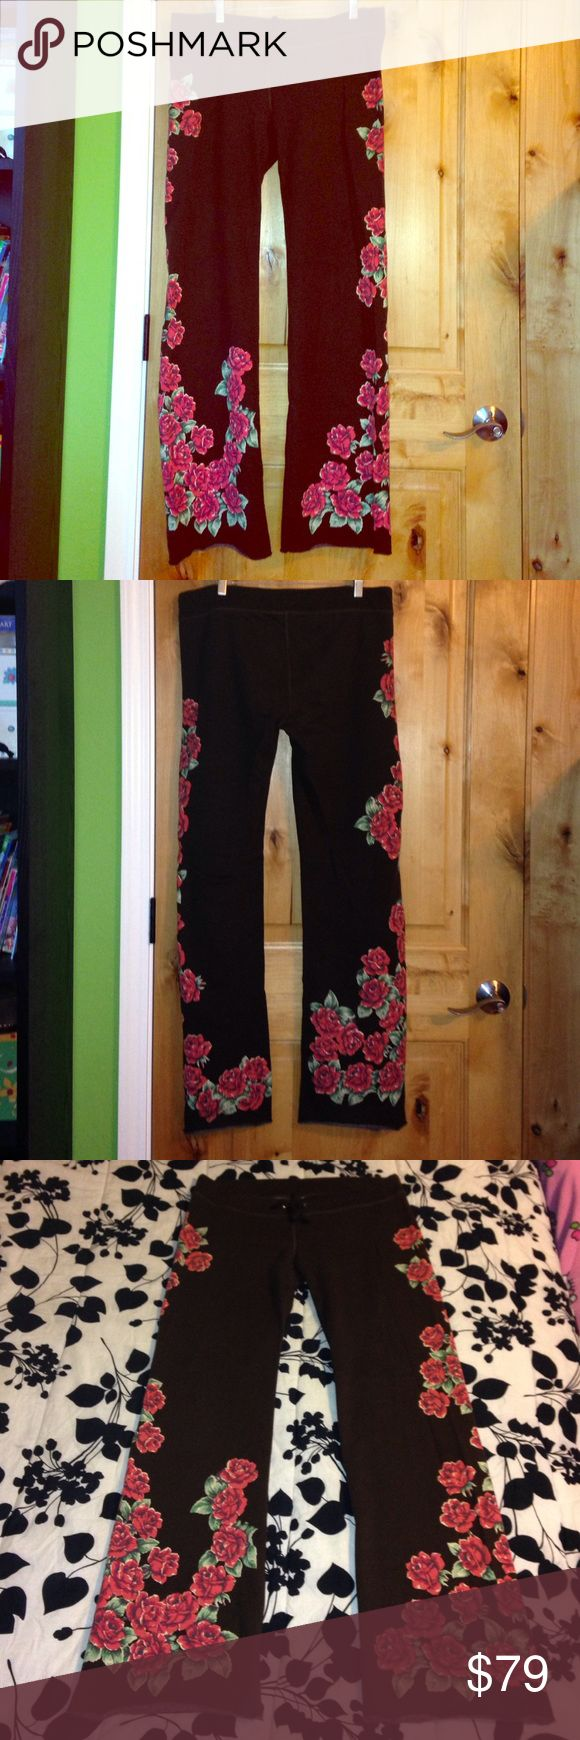 """LUCKY BRAND Dark Brown Roses SWEATPANTS NWOT M LUCKY BRAND Dark Brown Roses SWEATPANTS NWOT M •DETAILS: *Low Rise, Adjustable Tie-Front Waist, Raw Hems at Legs.  *Dark Brown w/ Beautiful Red Roses Design.  •MEASUREMENTS: Waist is 34"""" - 36""""; Inseam- 33""""; Total Length- 42"""" •MATERIAL: Cotton 89%, Polyester 11% •CARE: Machine Wash Cold **SMOKE-FREE & PET-FREE HOME!** Lucky Brand Pants Track Pants & Joggers"""